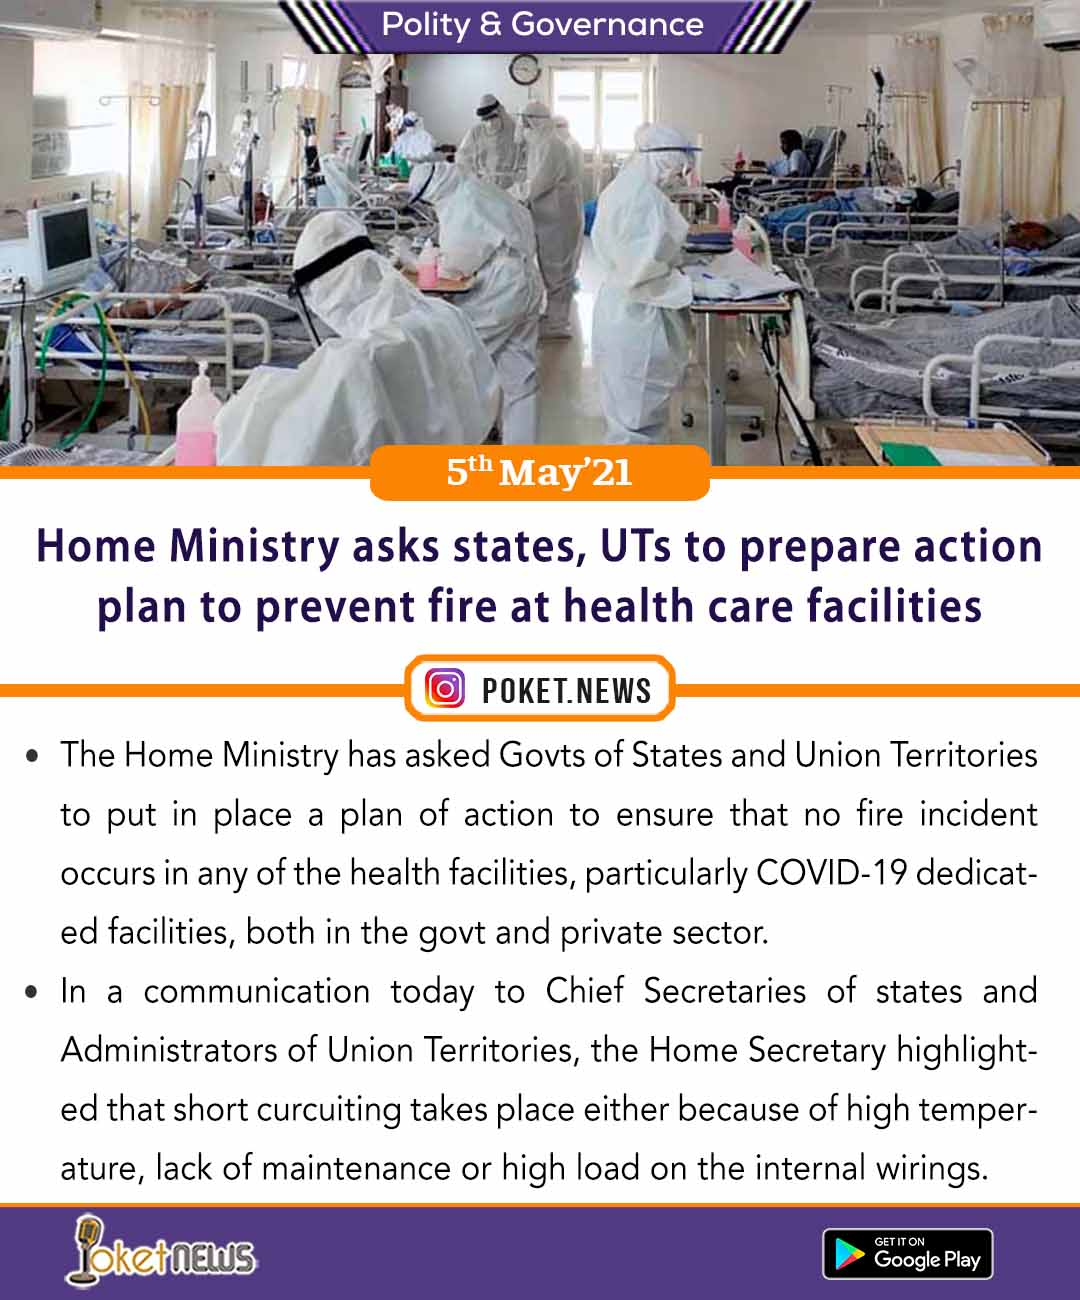 Home Ministry asks states, UTs to prepare action plan to prevent fire at health care facilities